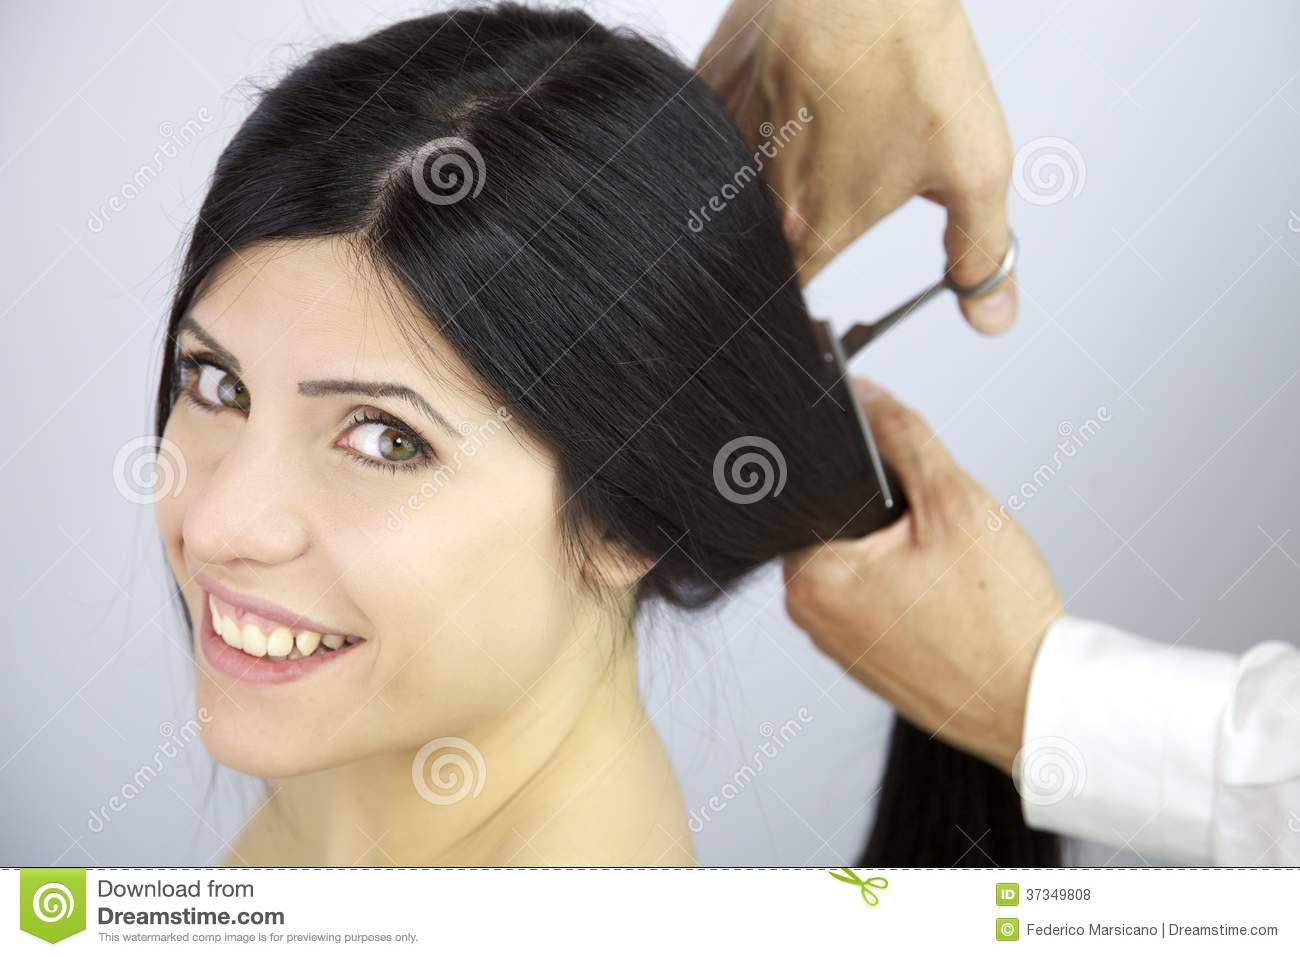 Marvelous Happy To Change Hairstyle Cutting My Long Hair Royalty Free Stock Short Hairstyles Gunalazisus